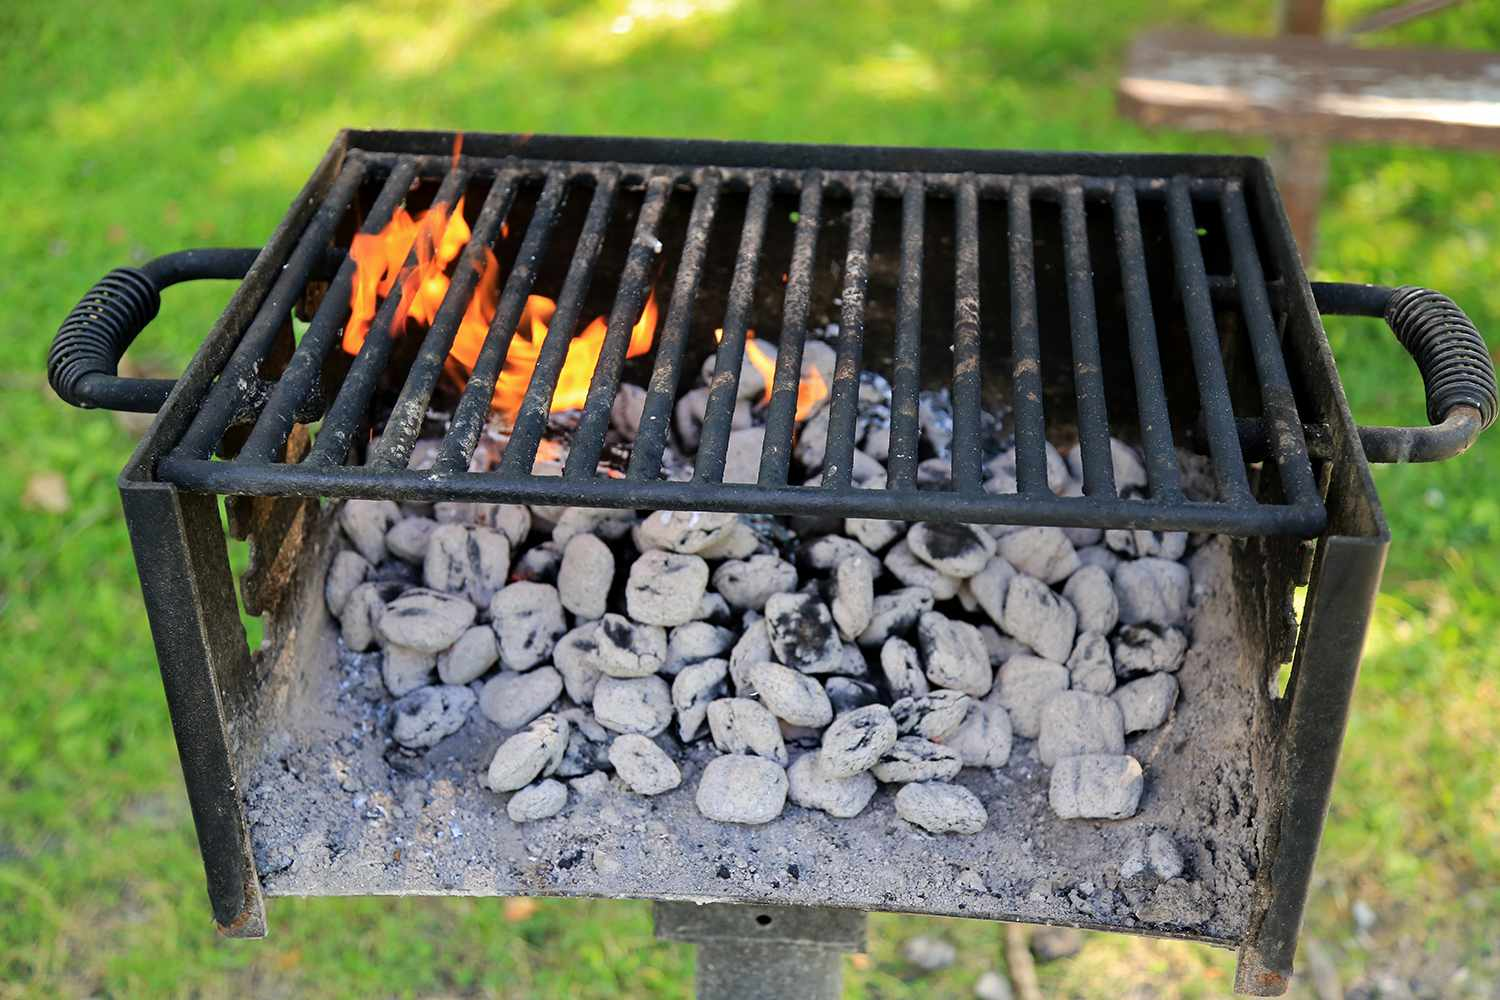 Burning charcoal on a outdoor BBQ grill